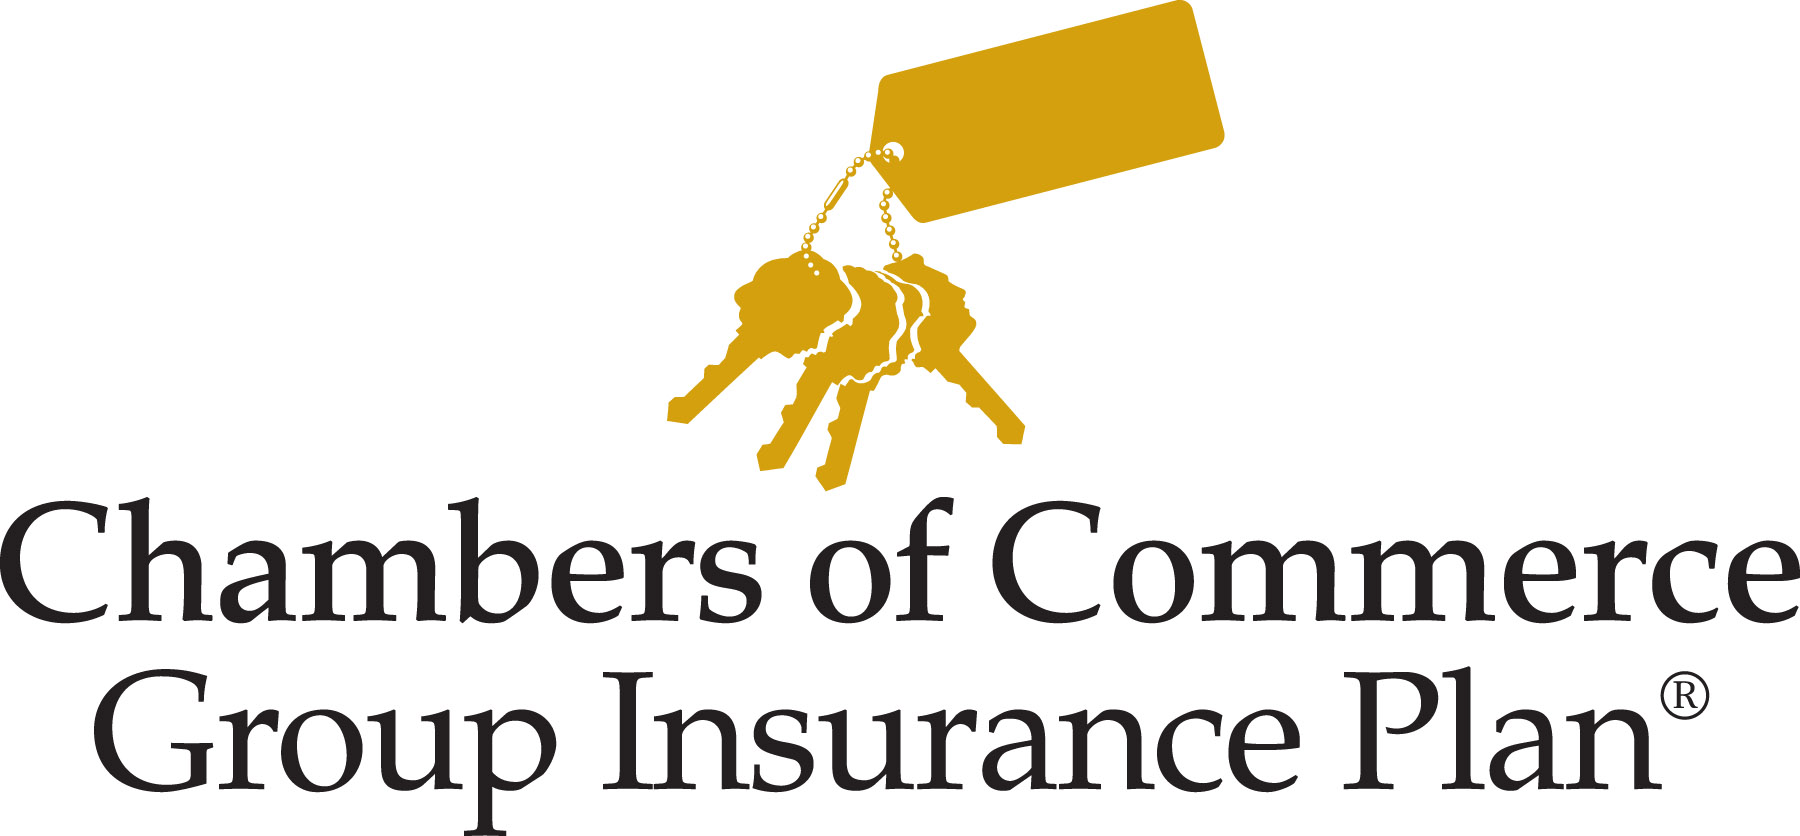 Phillips Financial - Chamber Group Insurance